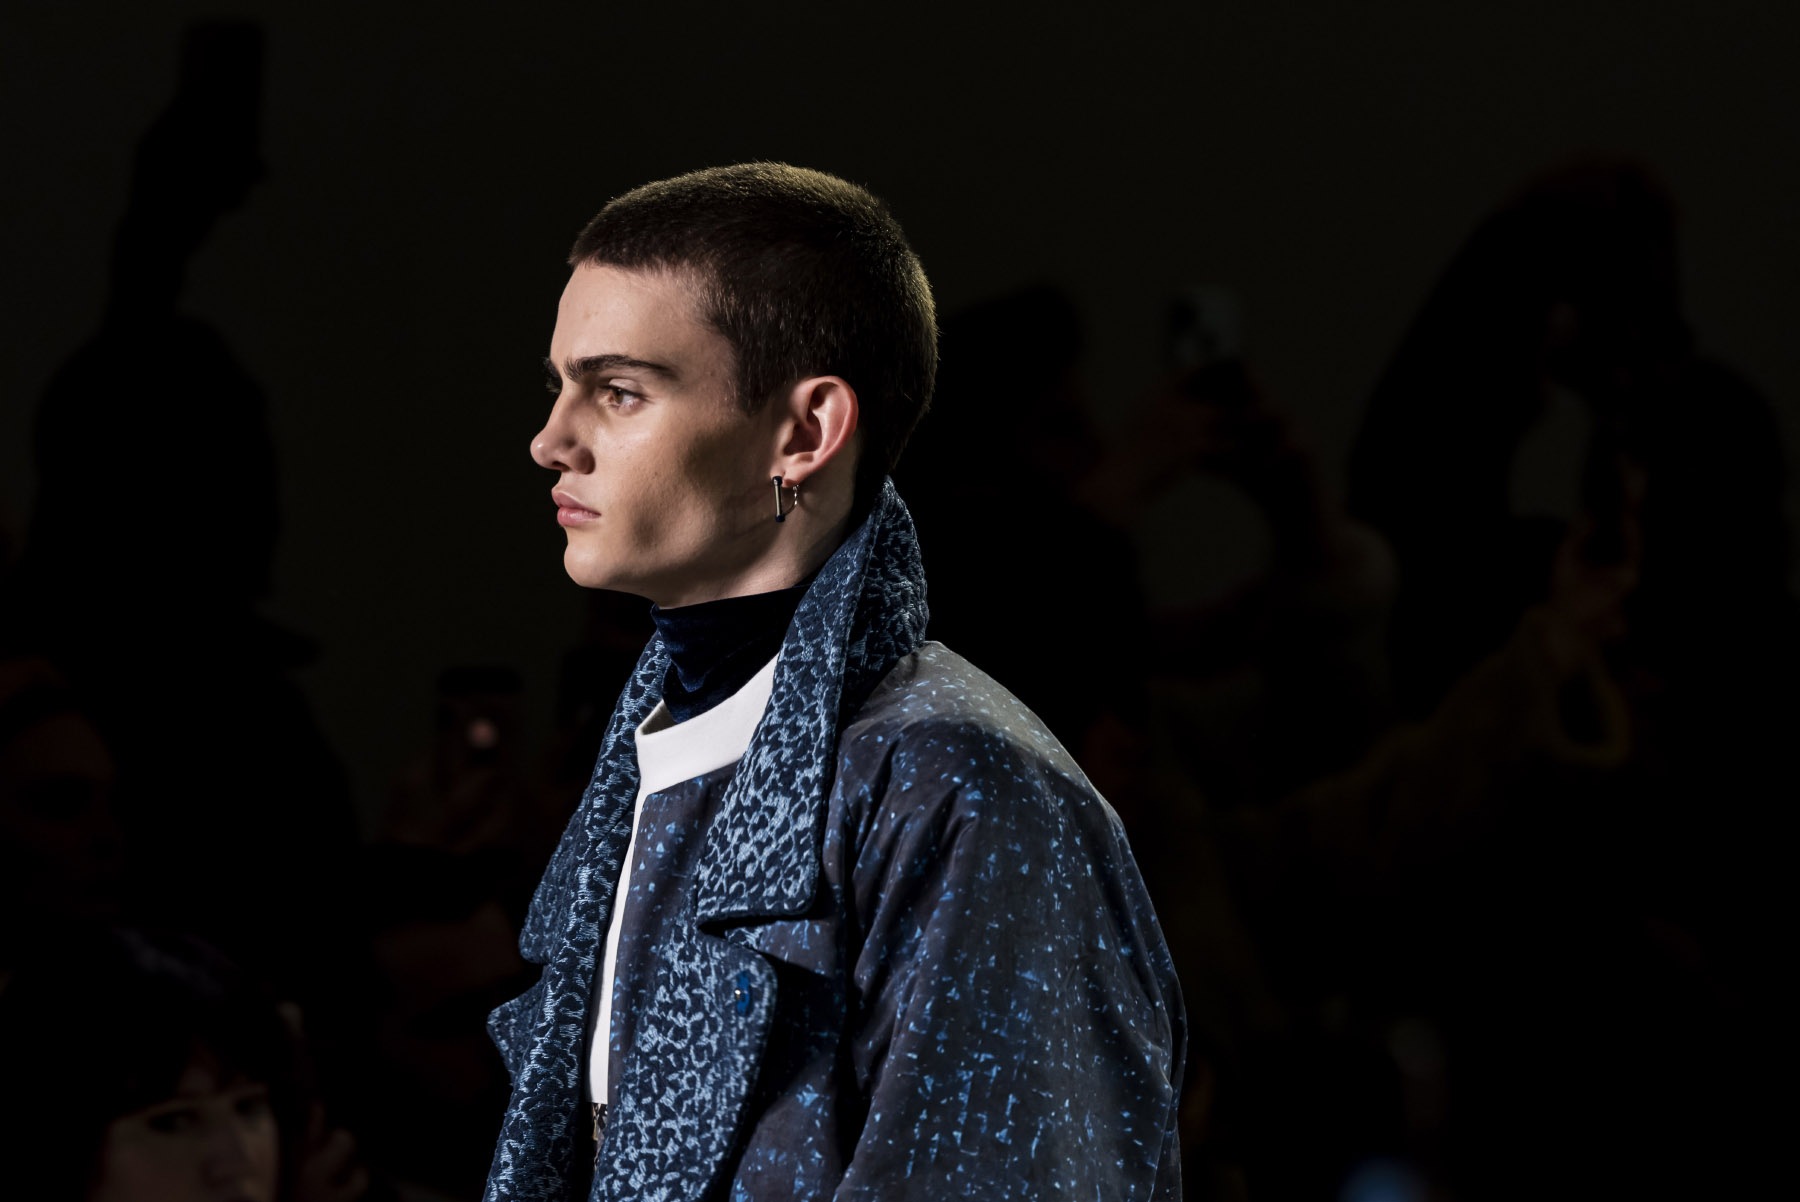 JUST IN XX BY YU-YING CHOU FALL WINTER 2020 MENSWEAR